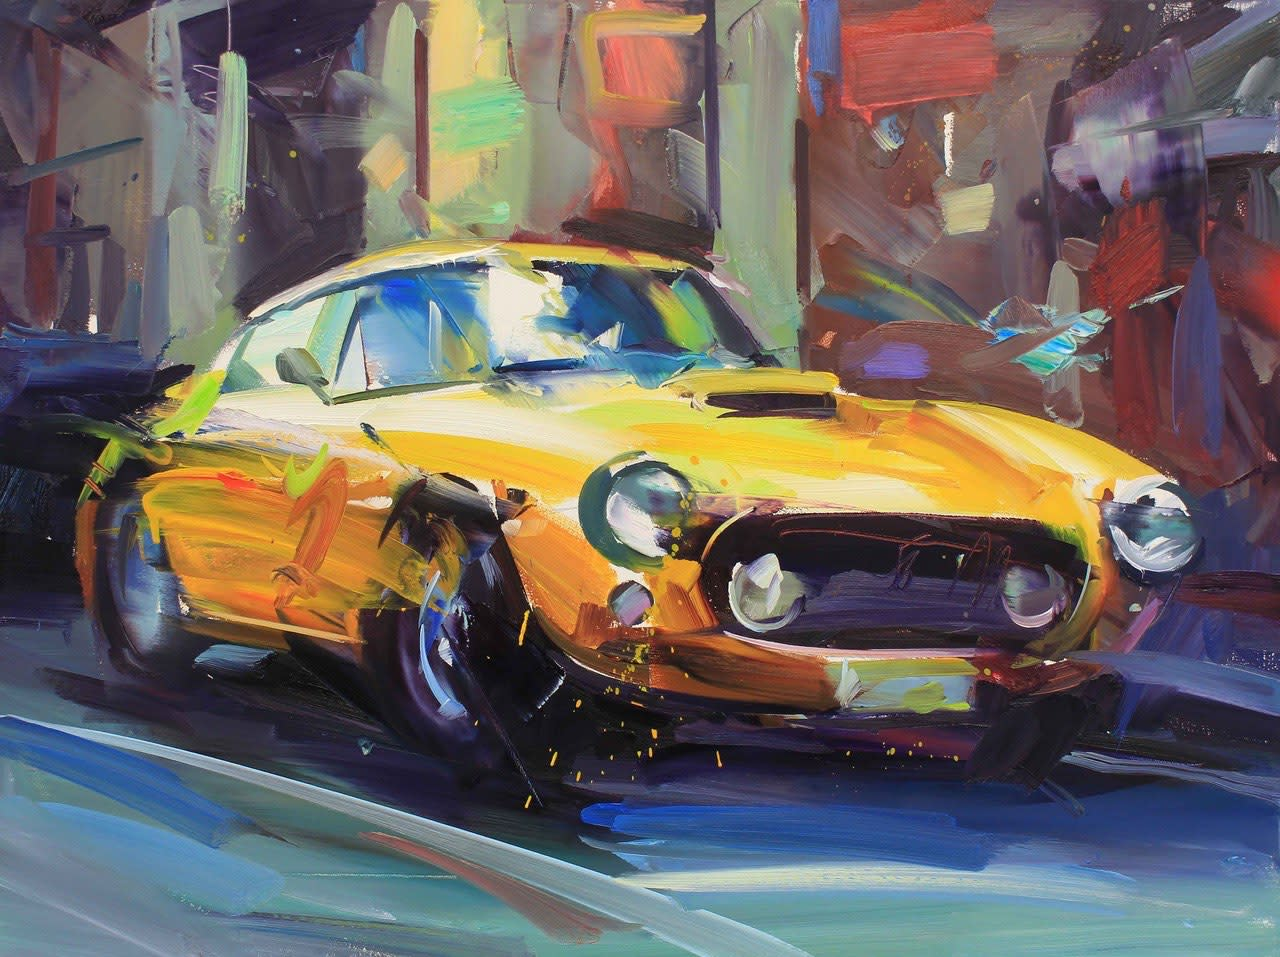 "<span class=""link fancybox-details-link""><a href=""/artists/188-paul-wright/works/2622-paul-wright-yellow-ferrari-limited-edition-print/"">View Detail Page</a></span><div class=""artist""><strong>Paul Wright</strong></div> <div class=""title""><em>Yellow Ferrari  (Limited Edition Print)</em></div> <div class=""medium"">Print on Paper </div> <div class=""dimensions"">52 x 69 cm </div> <div class=""edition_details"">Edition of 45</div><div class=""price"">£400.00</div><div class=""copyright_line"">Copyright The Artist</div>"